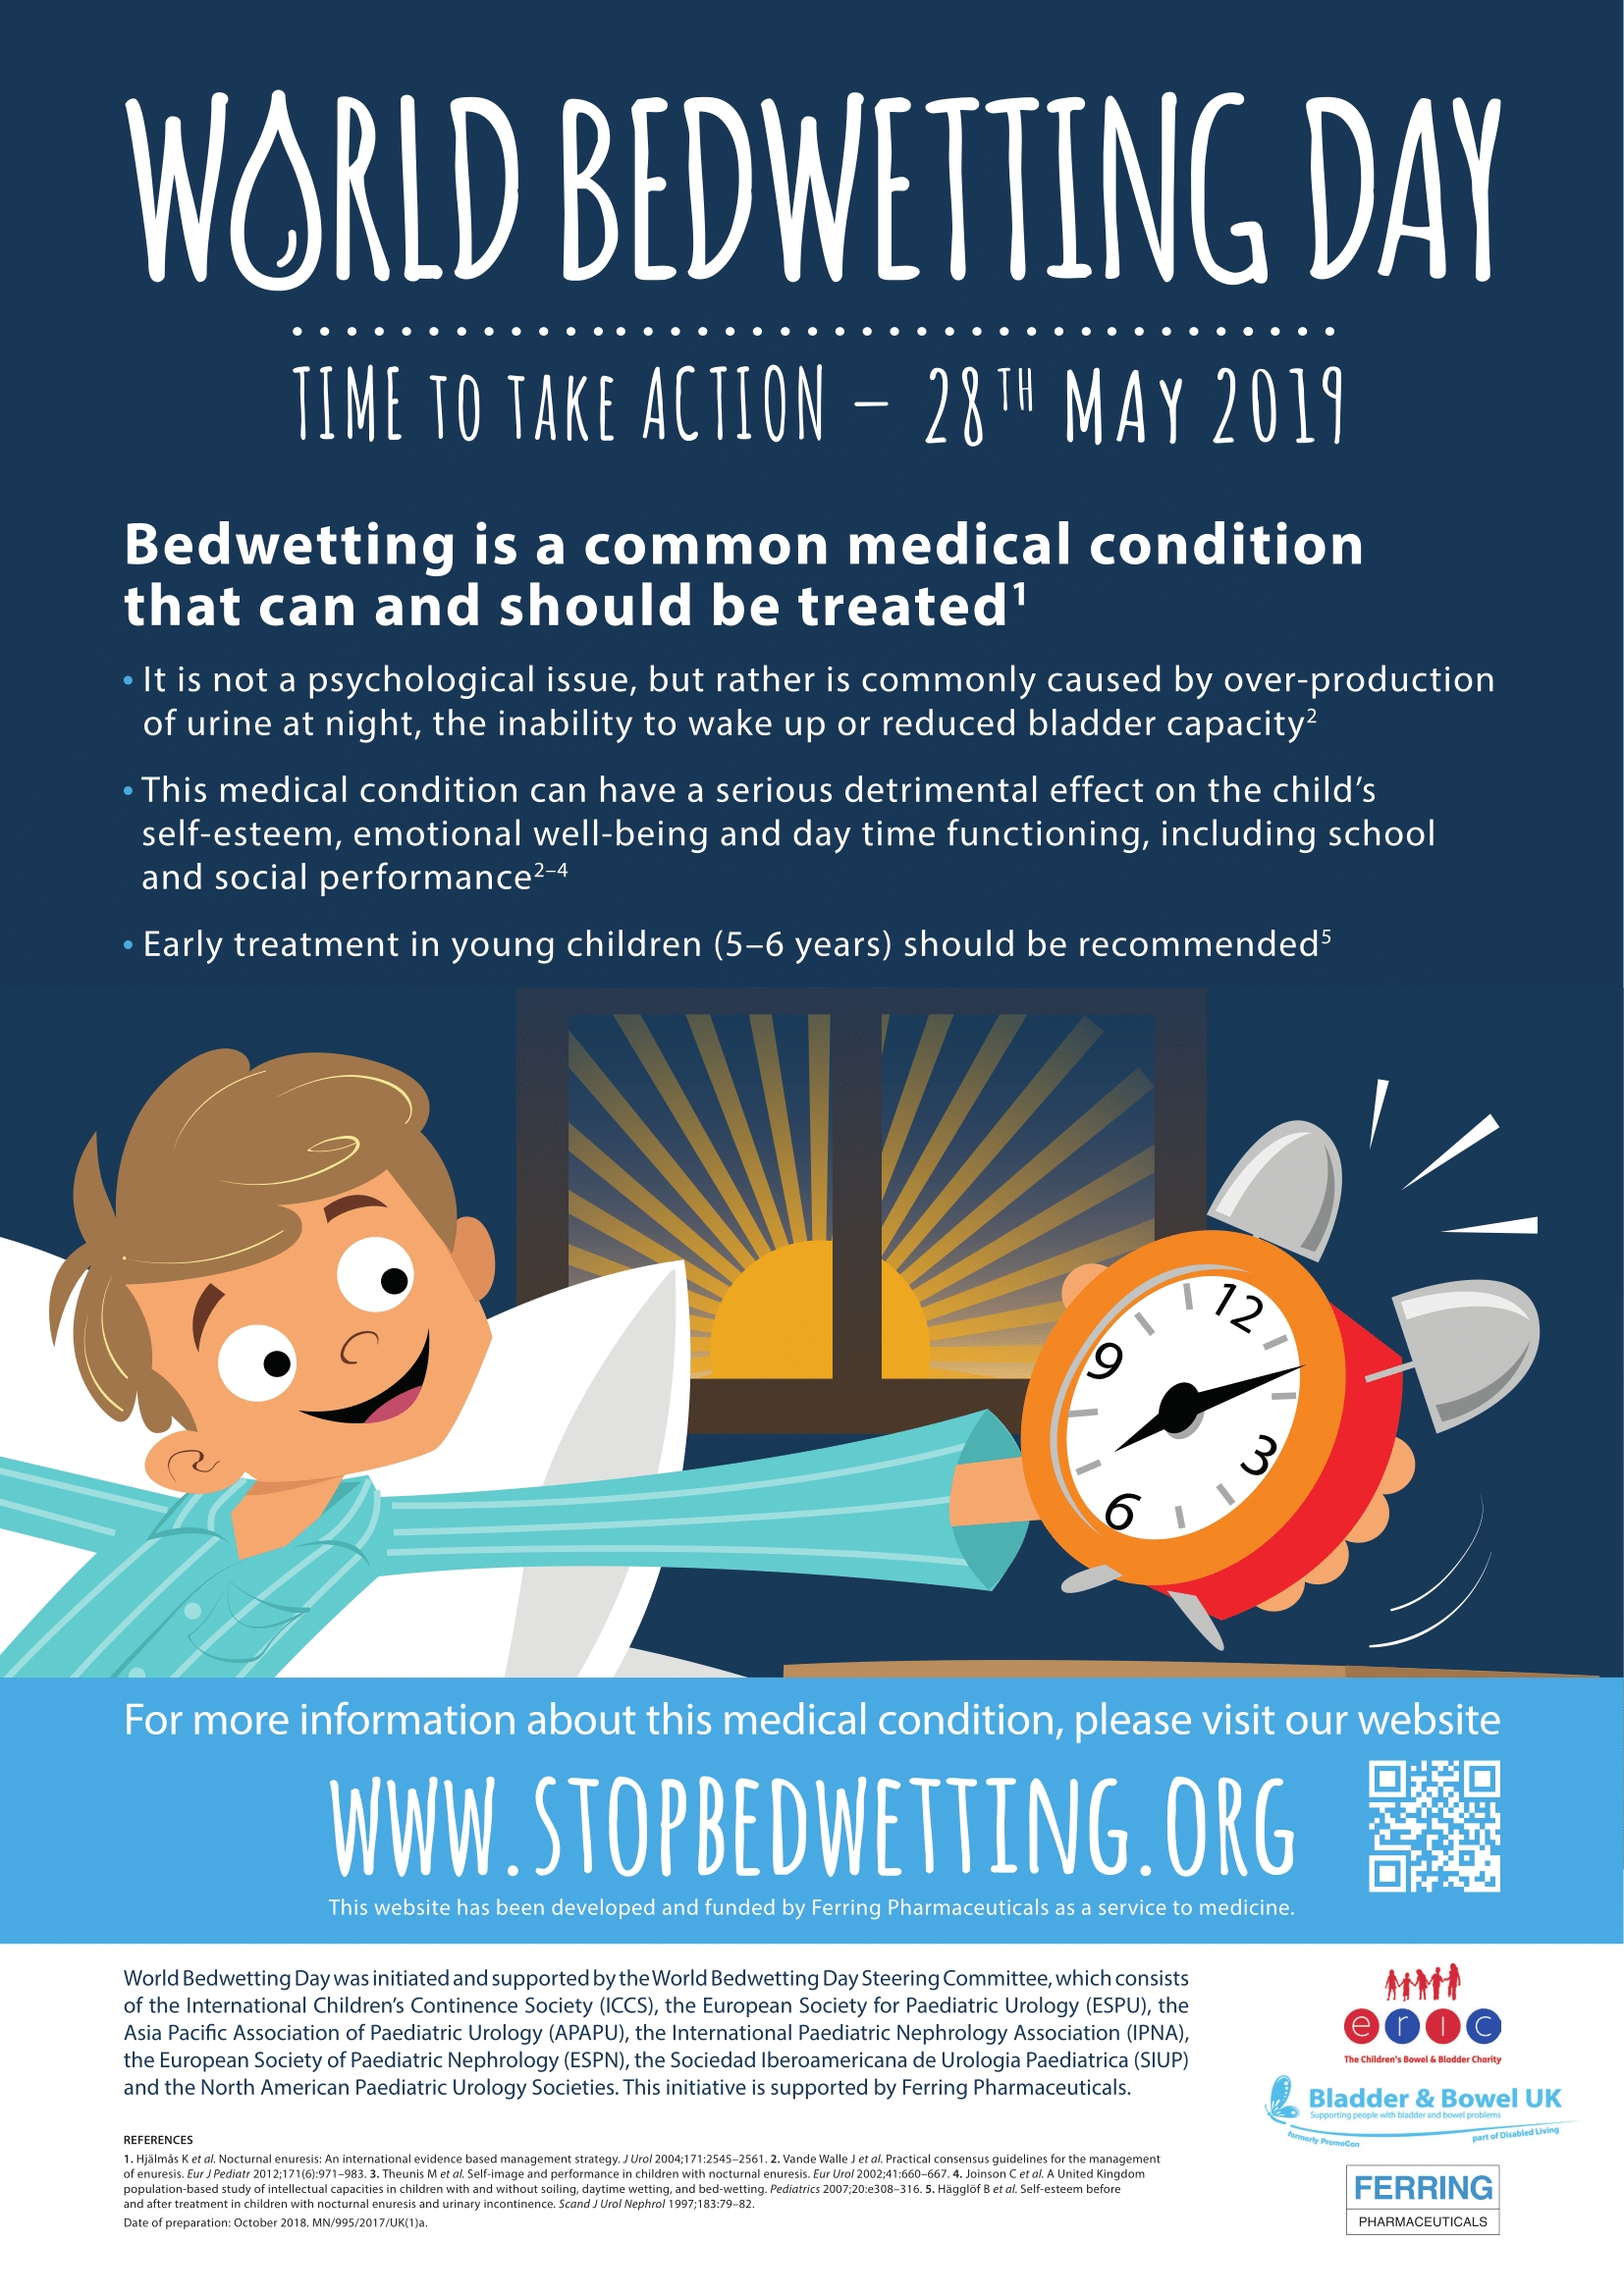 World Bedwetting Day Tuesday 28th May 2019 Bladder Bowel Uk